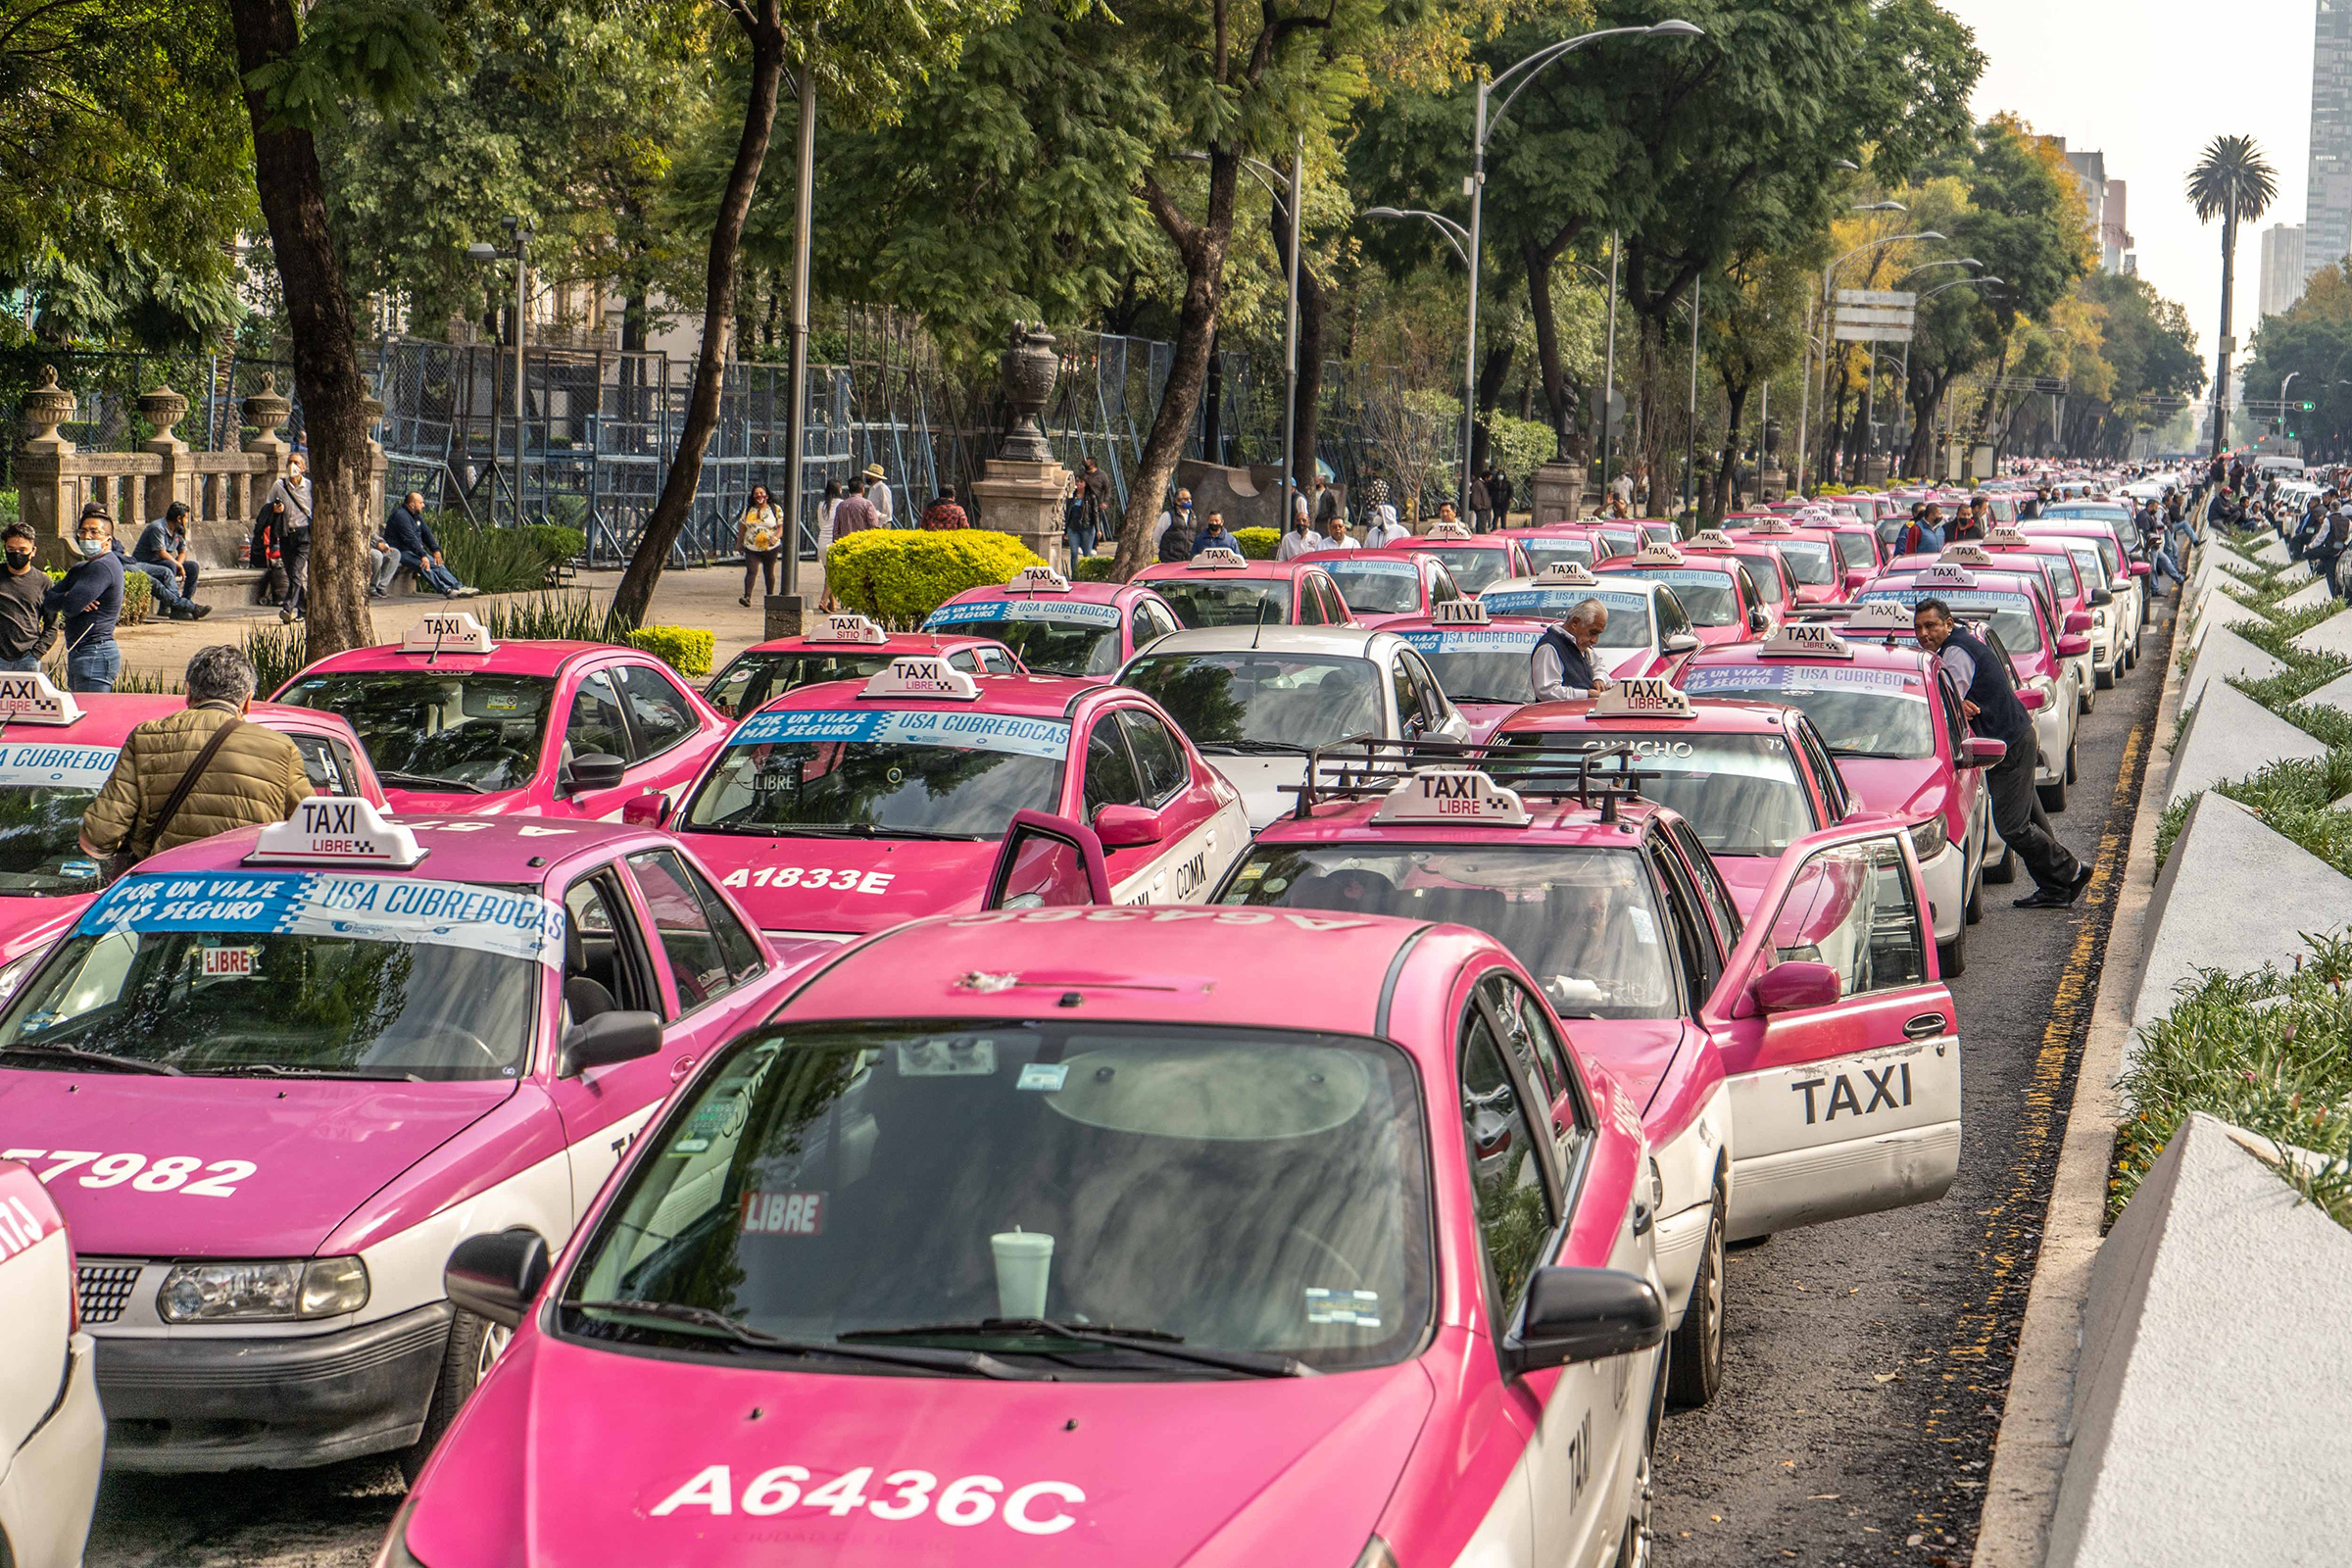 Taxi drivers in Mexico City protest on Oct. 12 over the rise of foreign ride-share apps including Uber and DiDi